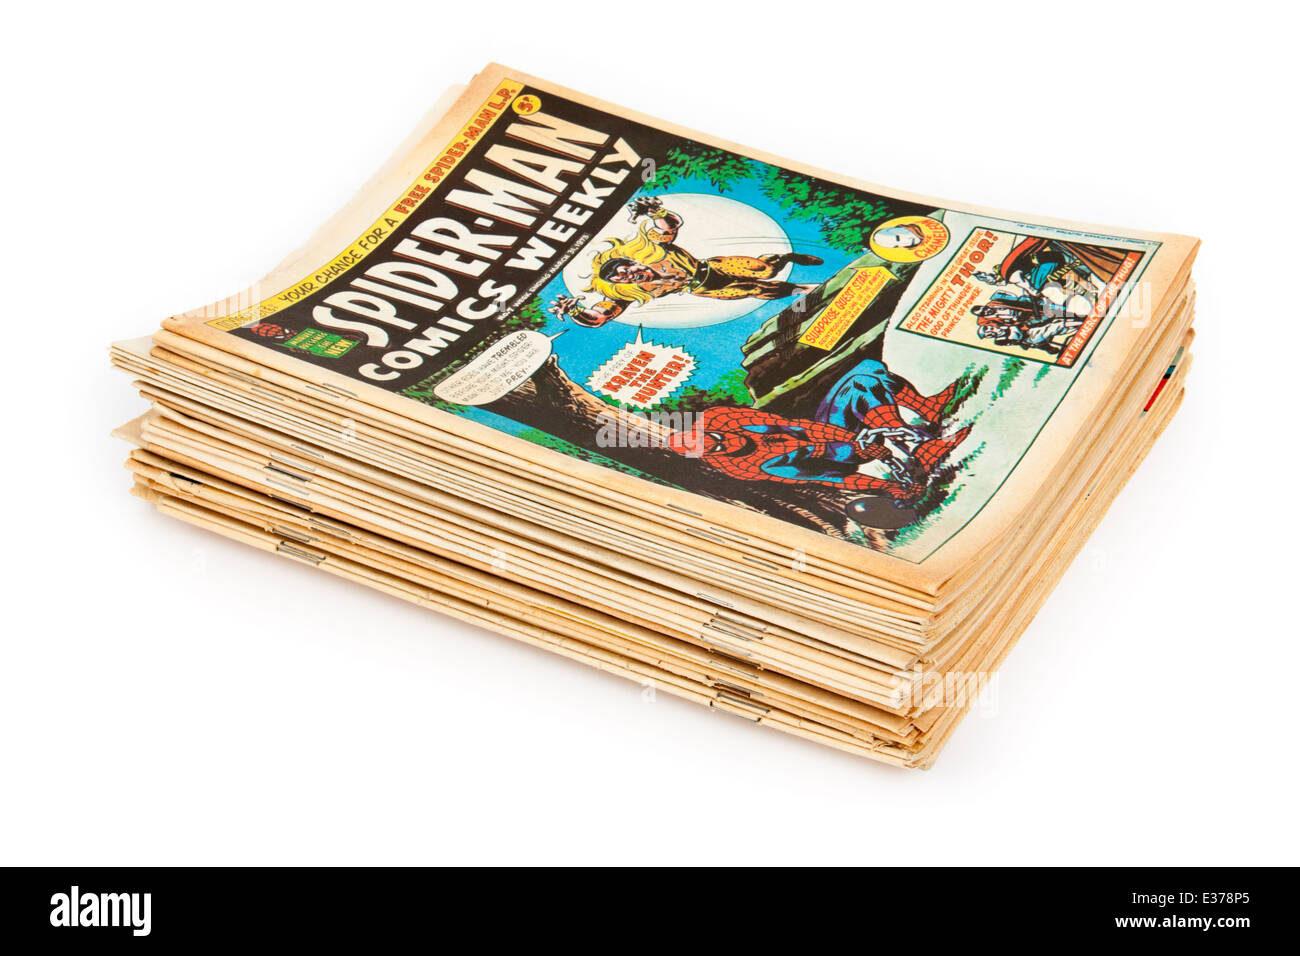 Vintage collection of 'Spider-man Comics Weekly' comics, the popular British weekly comic from the 1970's. - Stock Image